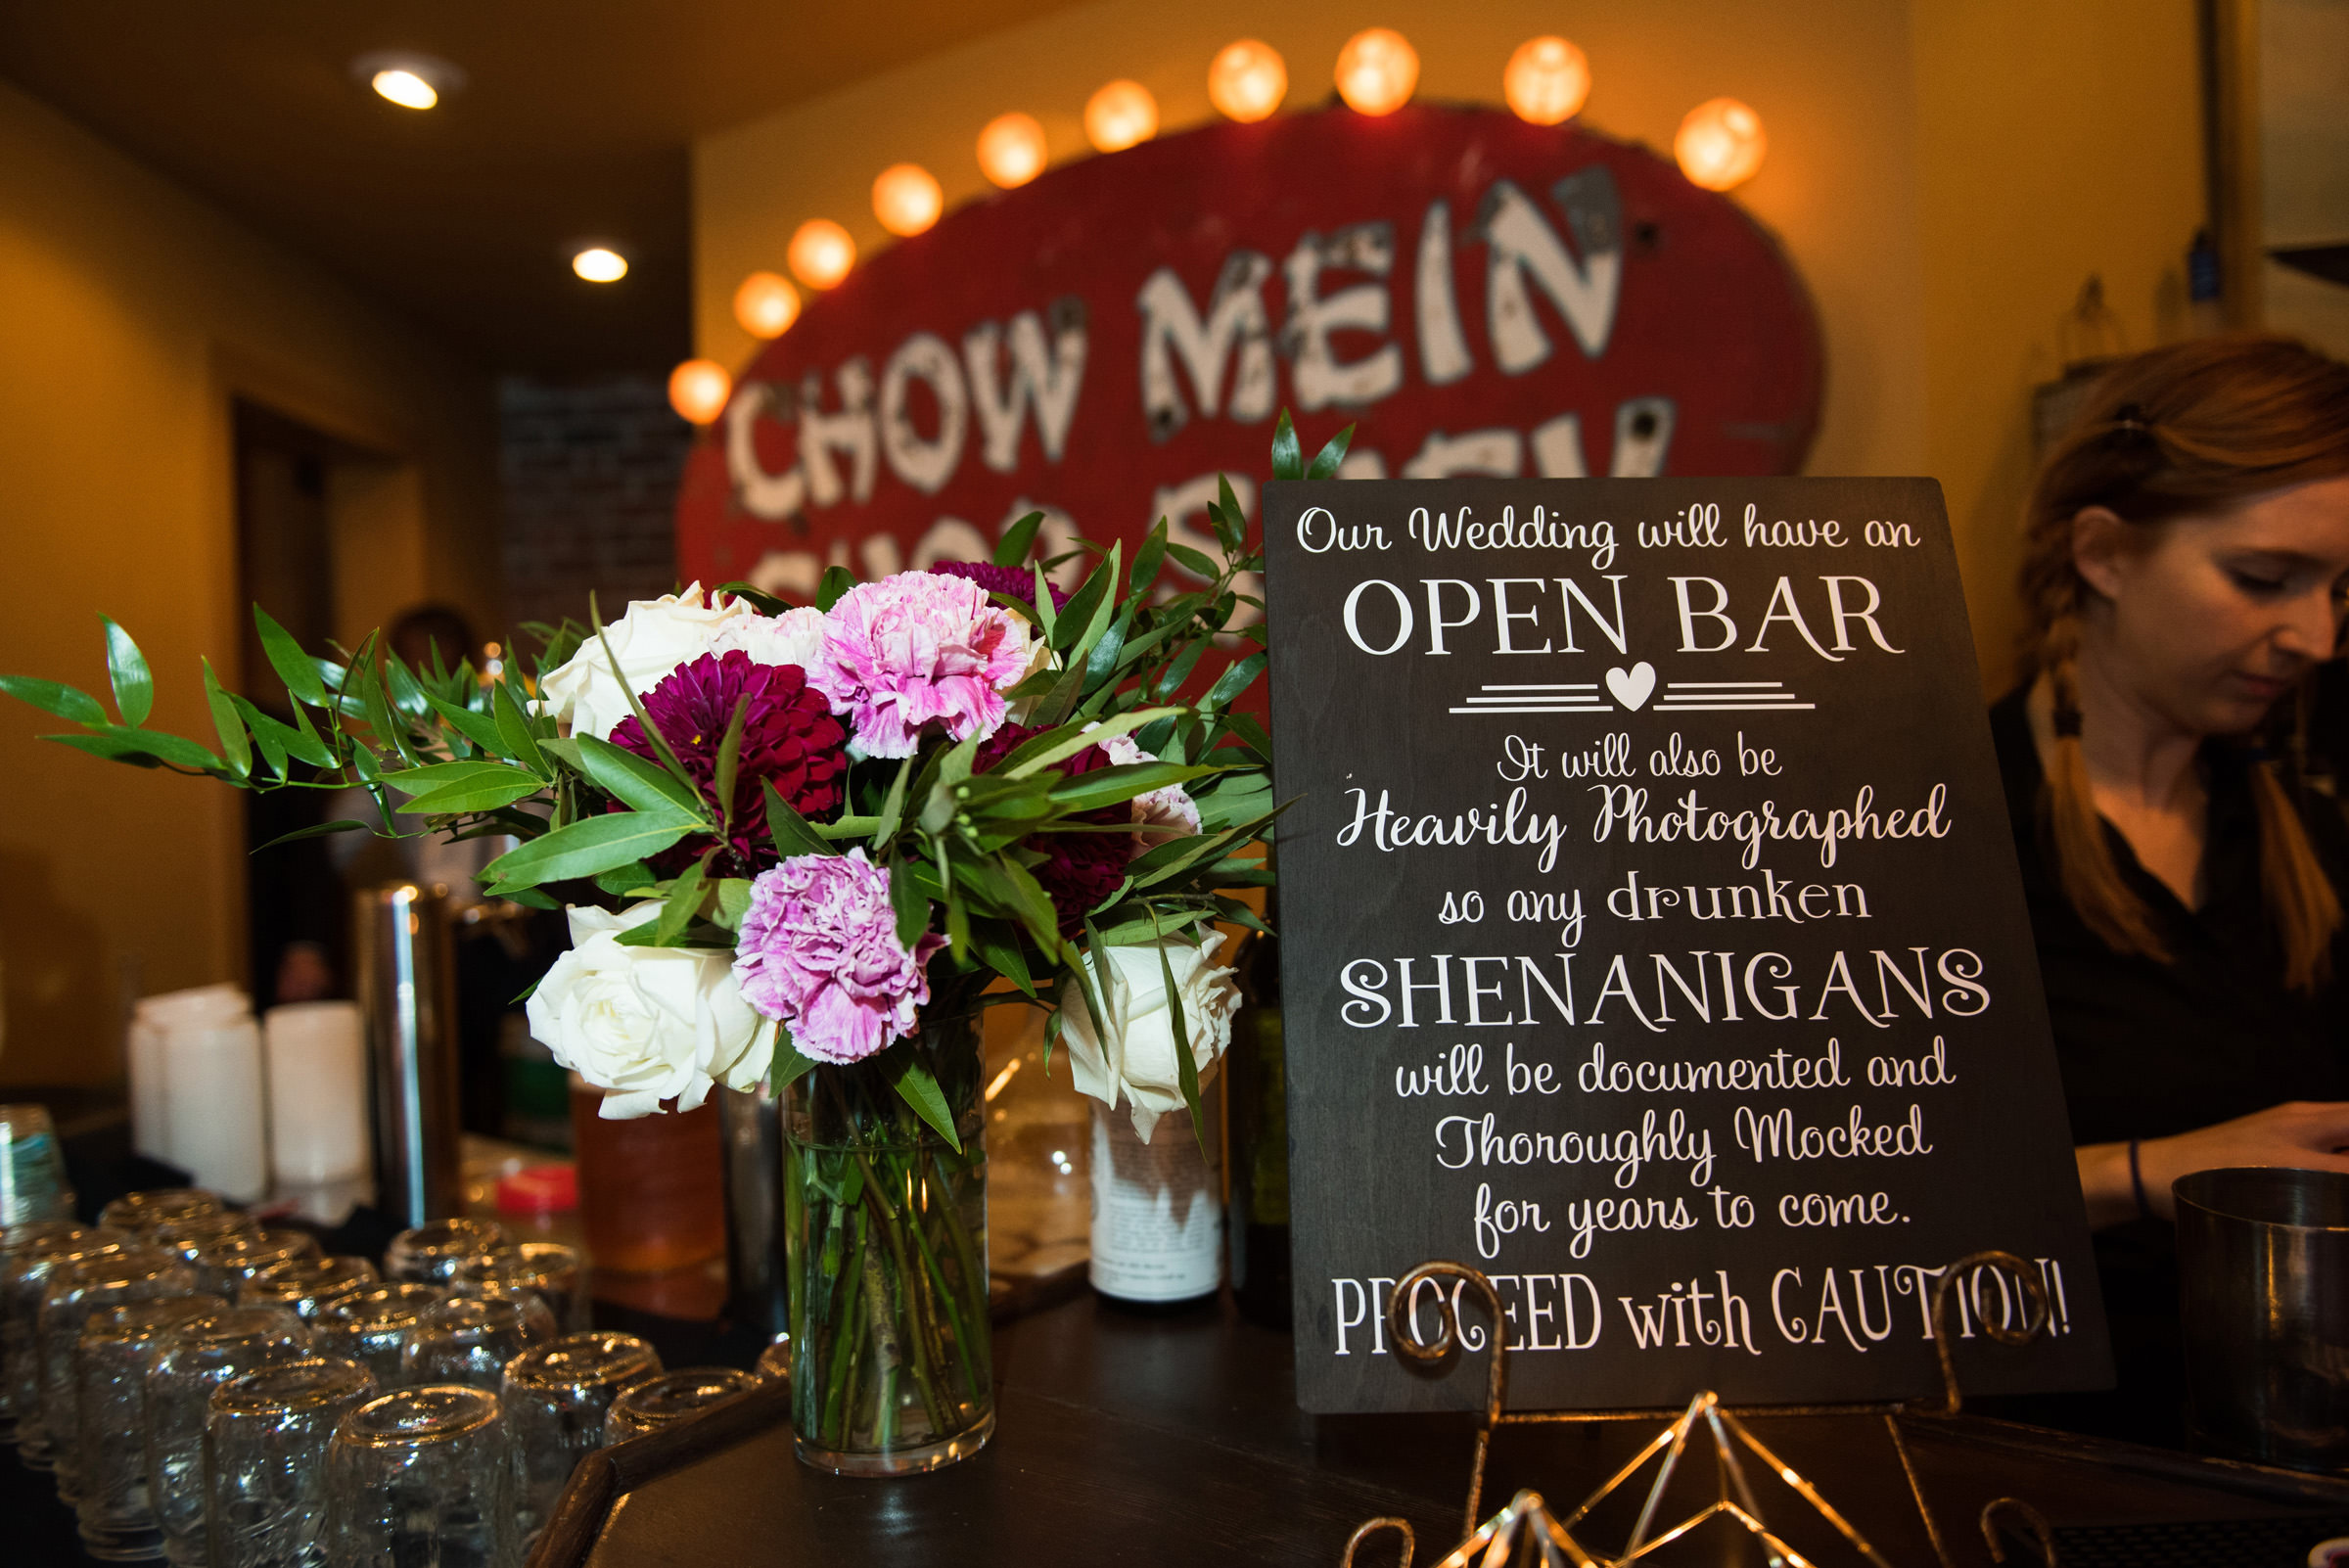 bar-at-restaurant-with-flowers-and-lighted-chow-mein-sign-barbie-hull-photography